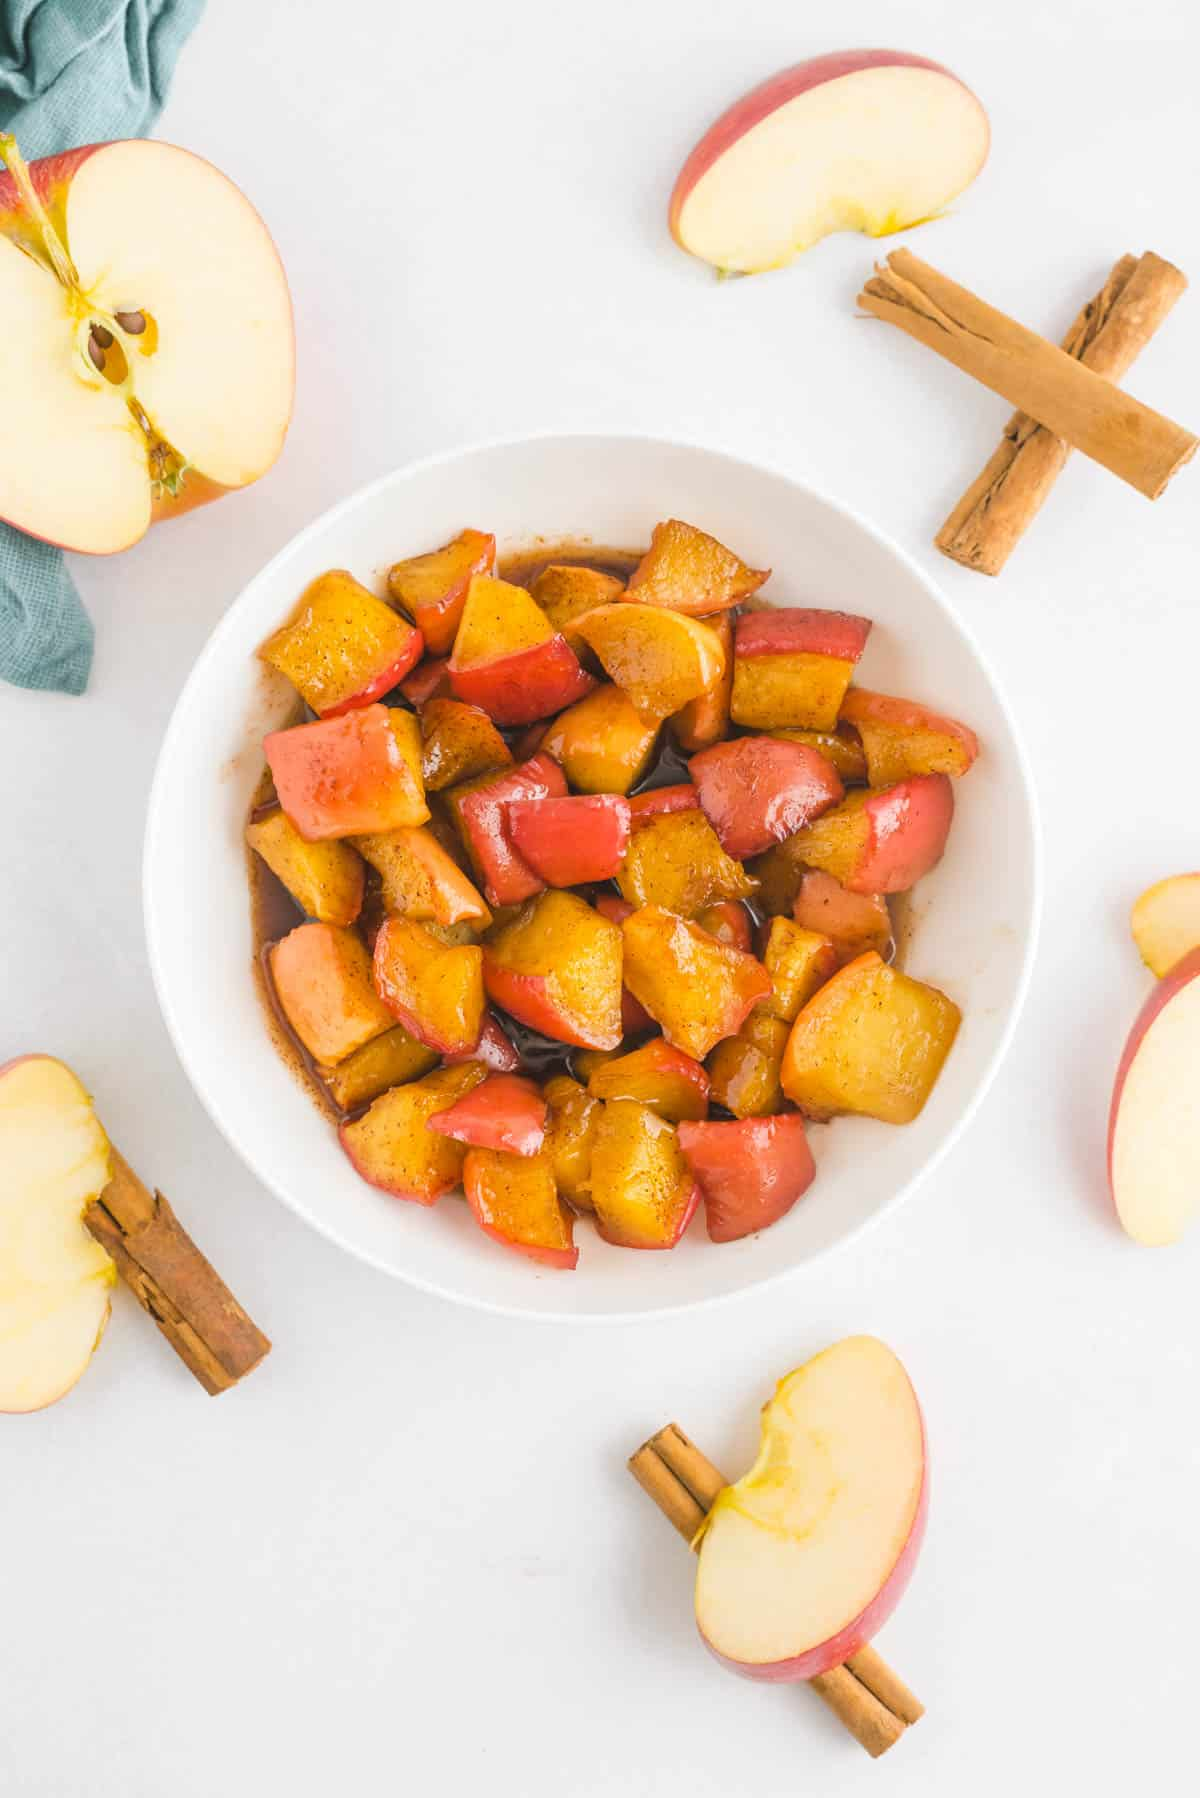 Apple compote in a white bowl, surrounded by apples and cinnamon sticks.